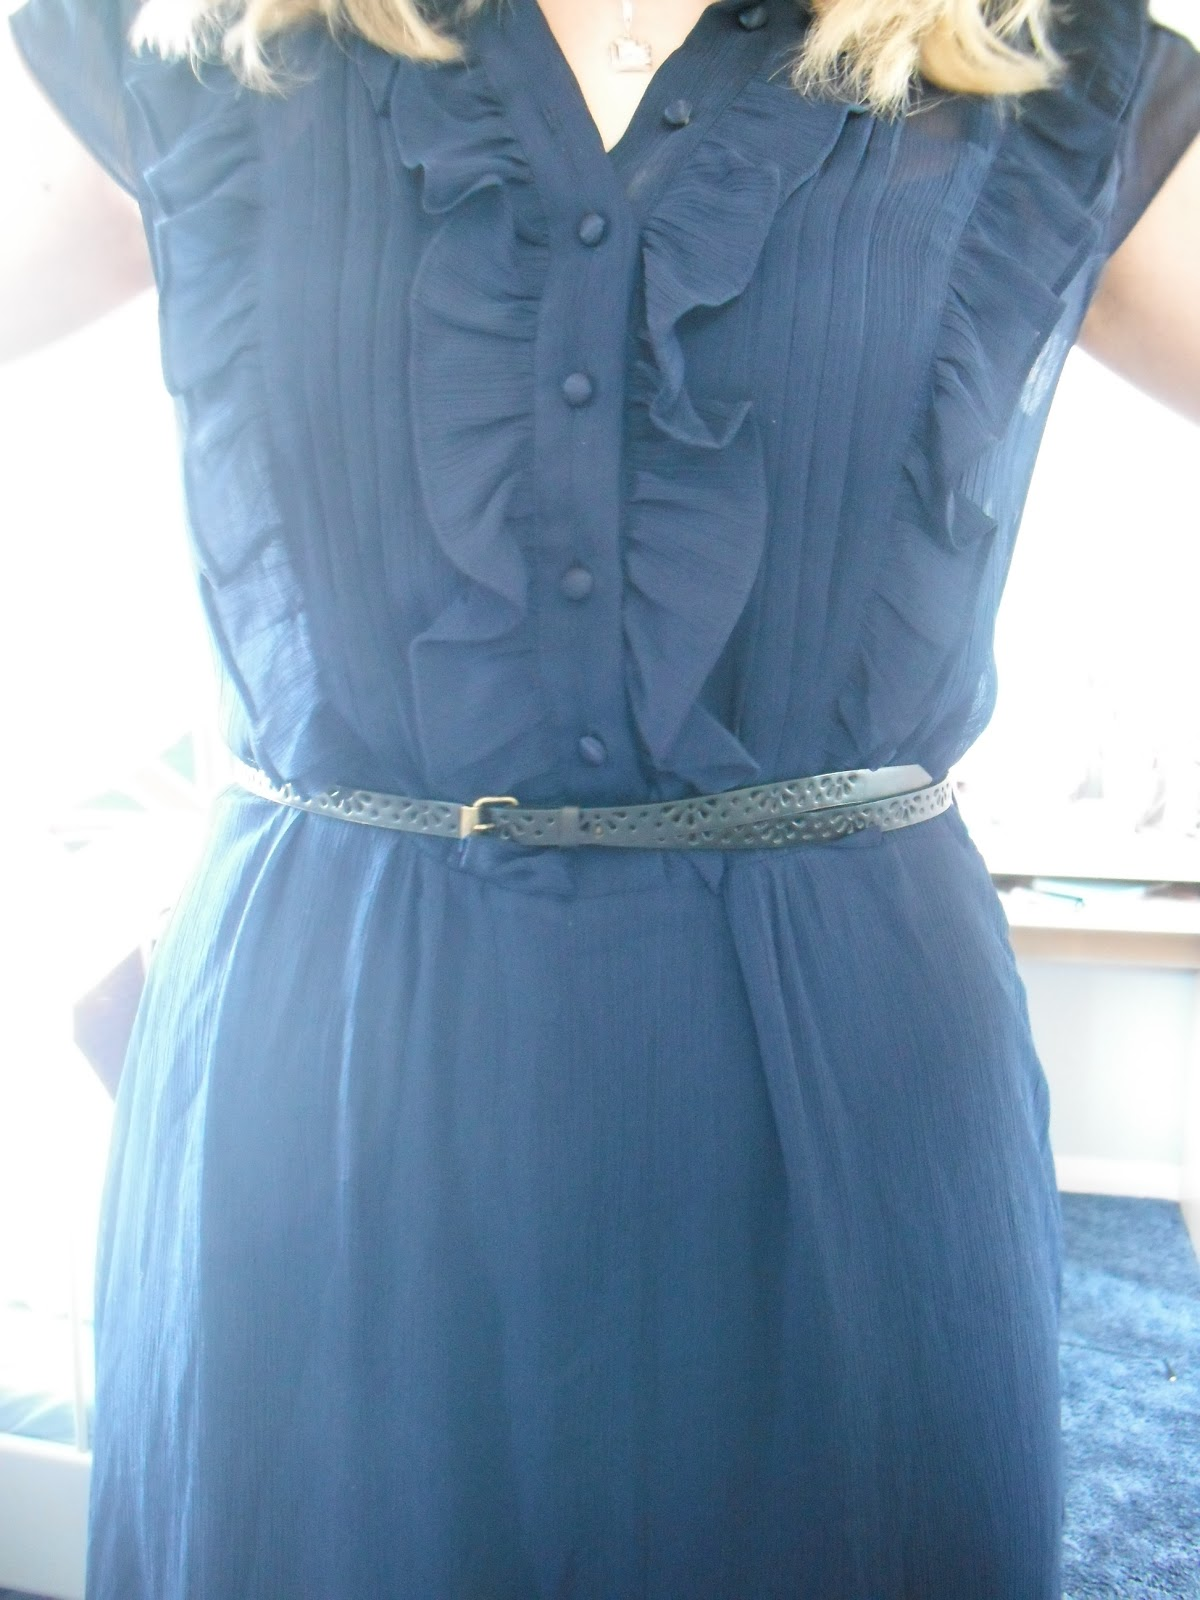 OOTD 13/04/12 - Navy Chiffon Dress.. ♥ | Victoria\'s Vintage Blog